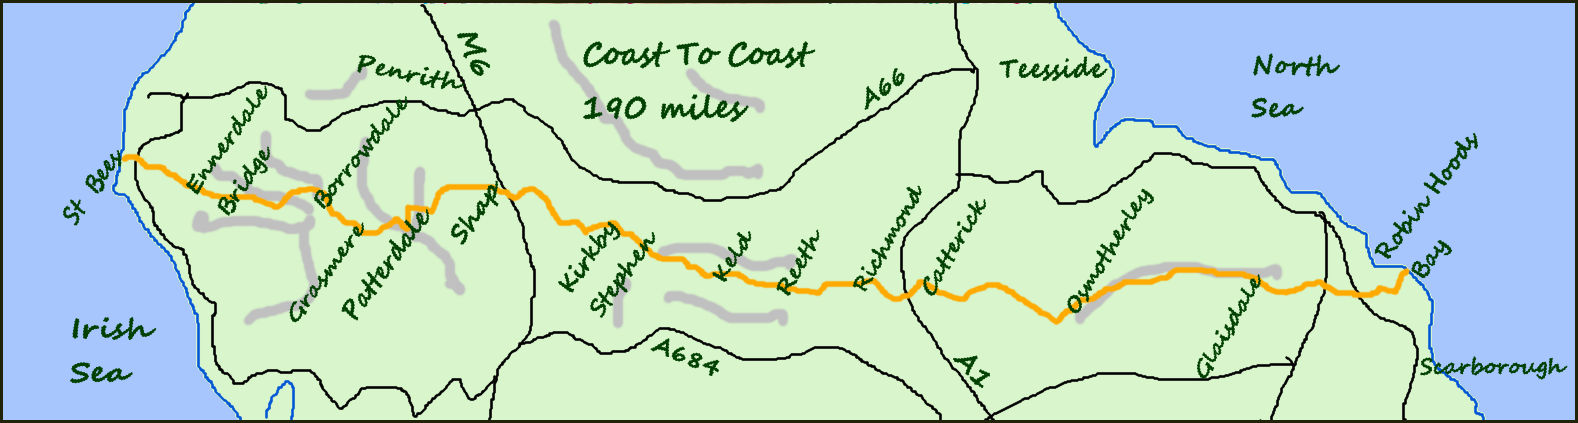 Coast to Coast map